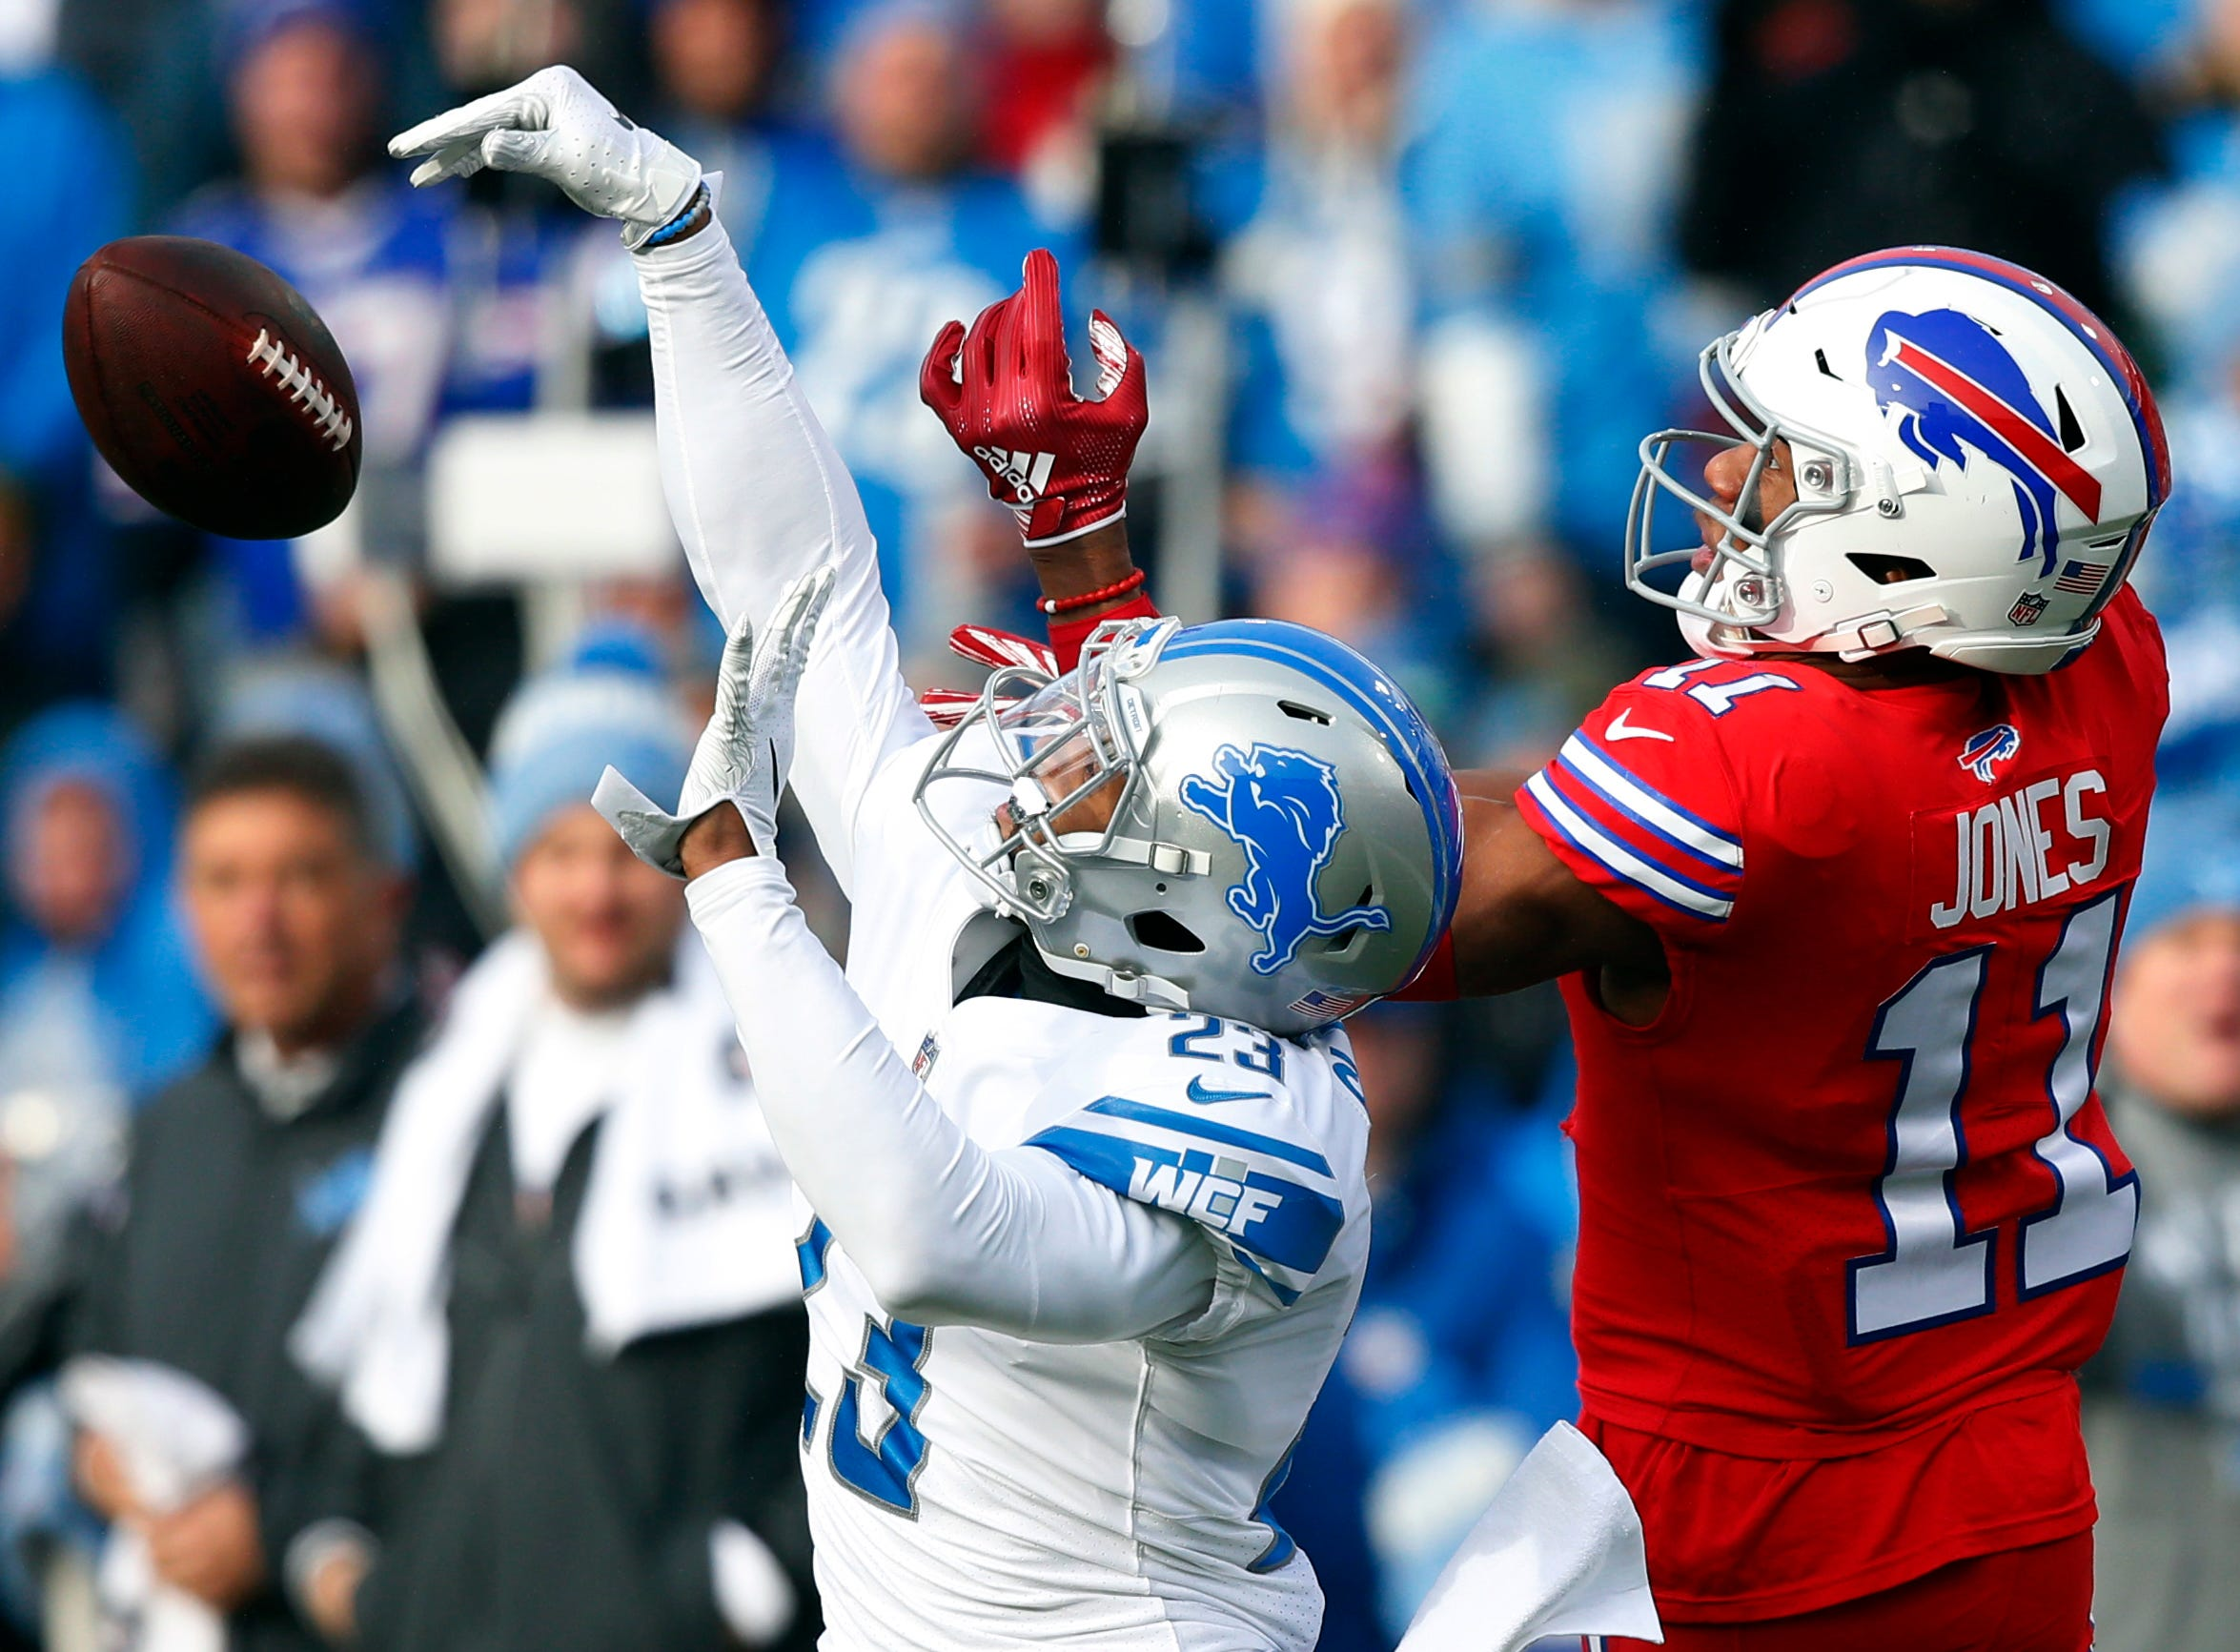 Detroit Lions cornerback Darius Slay (23) knocks the ball away from Buffalo Bills wide receiver Zay Jones (11) during the first half.